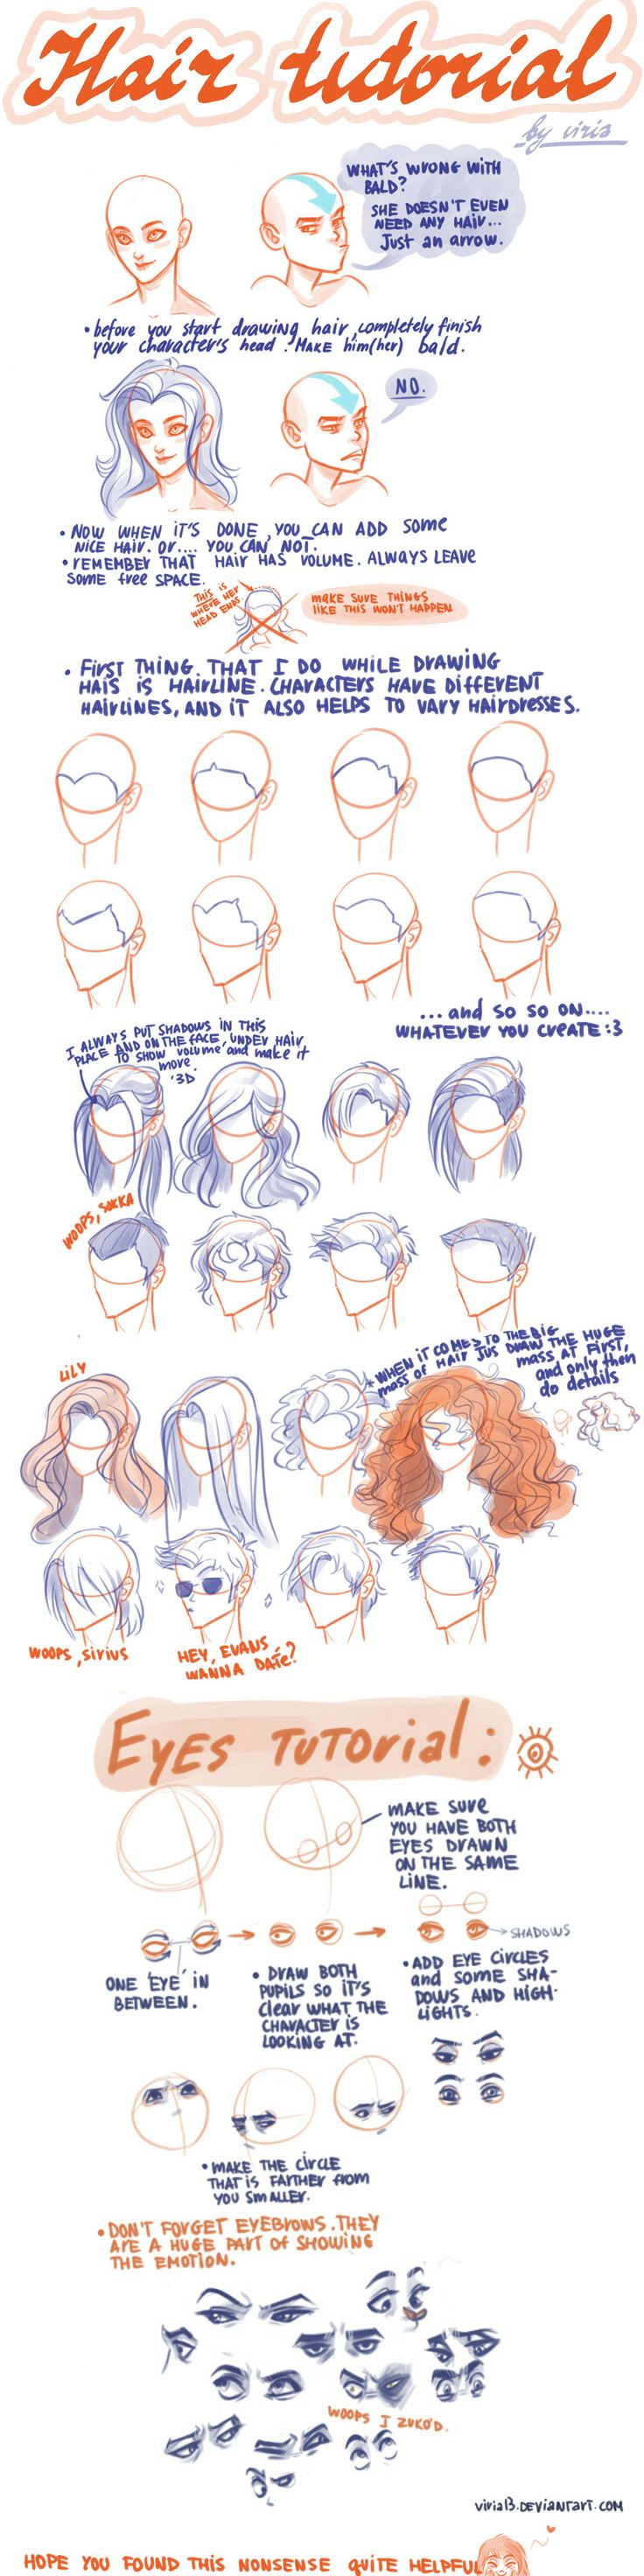 hair-eyes tutorial  ★ || CHARACTER DESIGN REFERENCES™ (https://www.facebook.com/CharacterDesignReferences & https://www.pinterest.com/characterdesigh) • Love Character Design? Join the #CDChallenge (link→ https://www.facebook.com/groups/CharacterDesignChallenge) Share your unique vision of a theme, promote your art in a community of over 50.000 artists! || ★